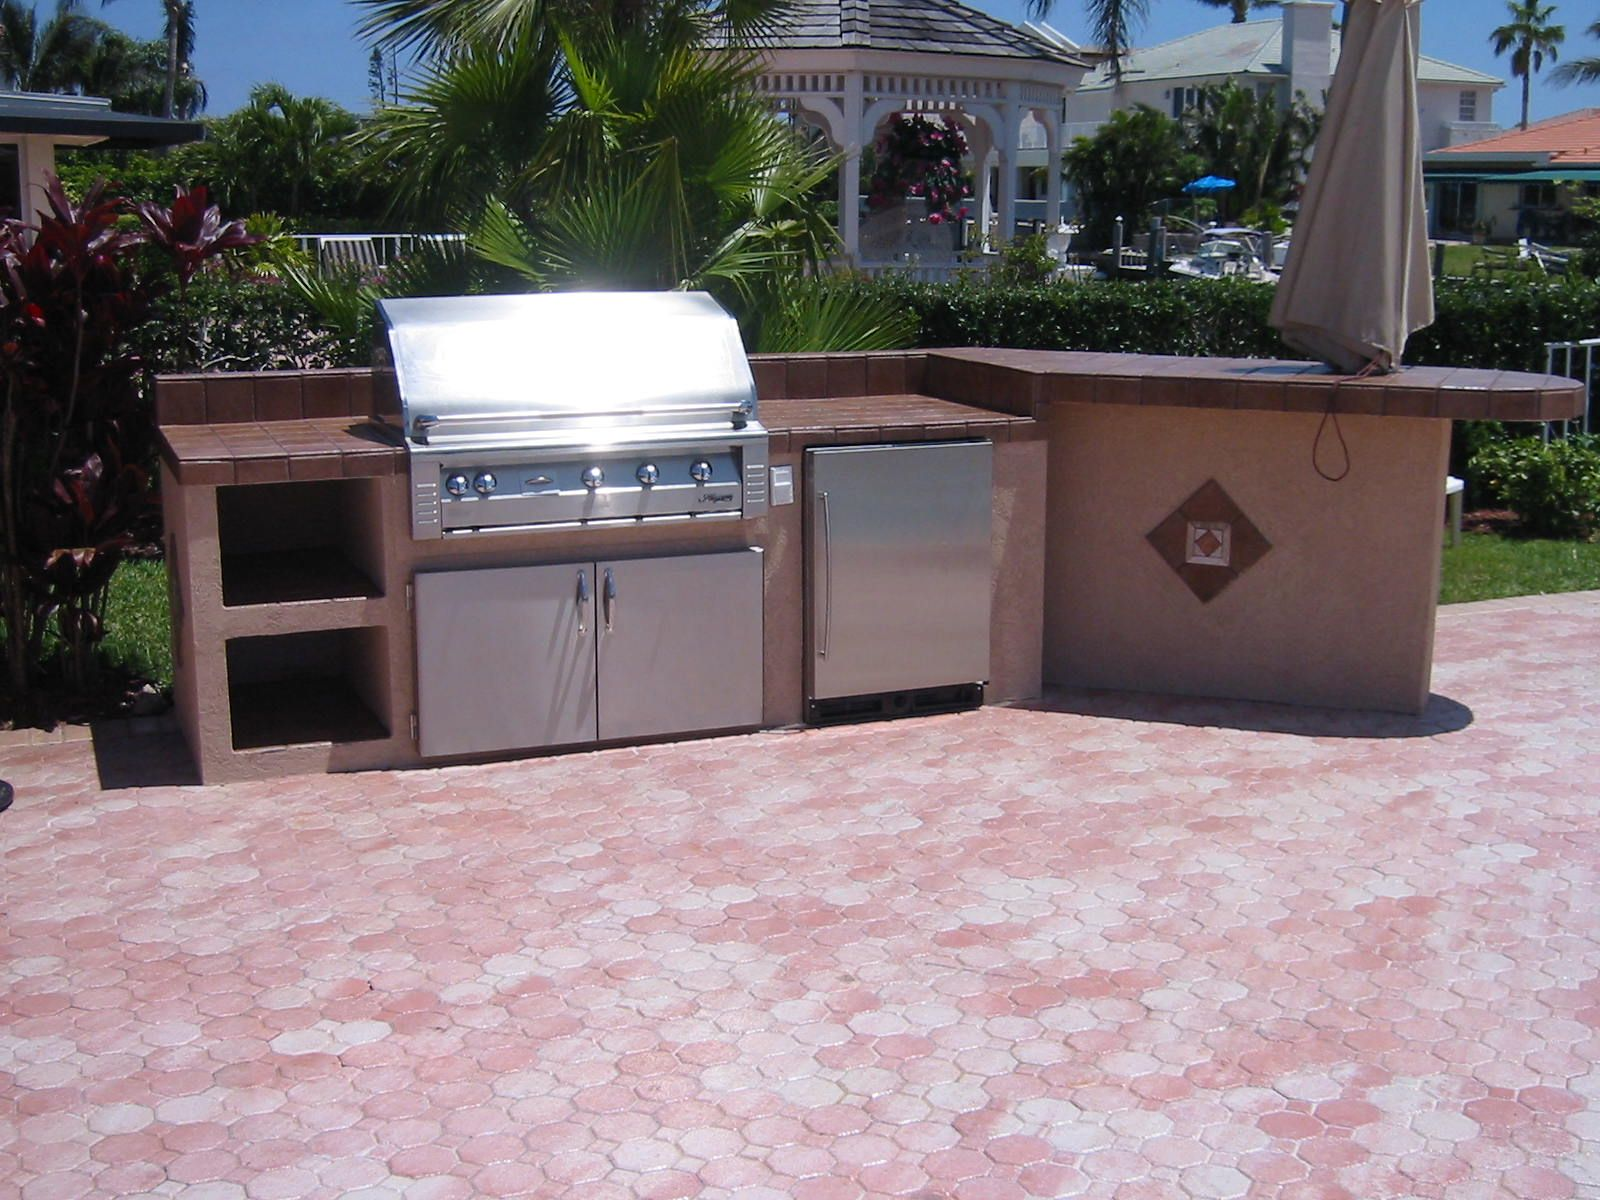 Barbeque picnic built in outdoor grills more outdoor for Outdoor grill island ideas